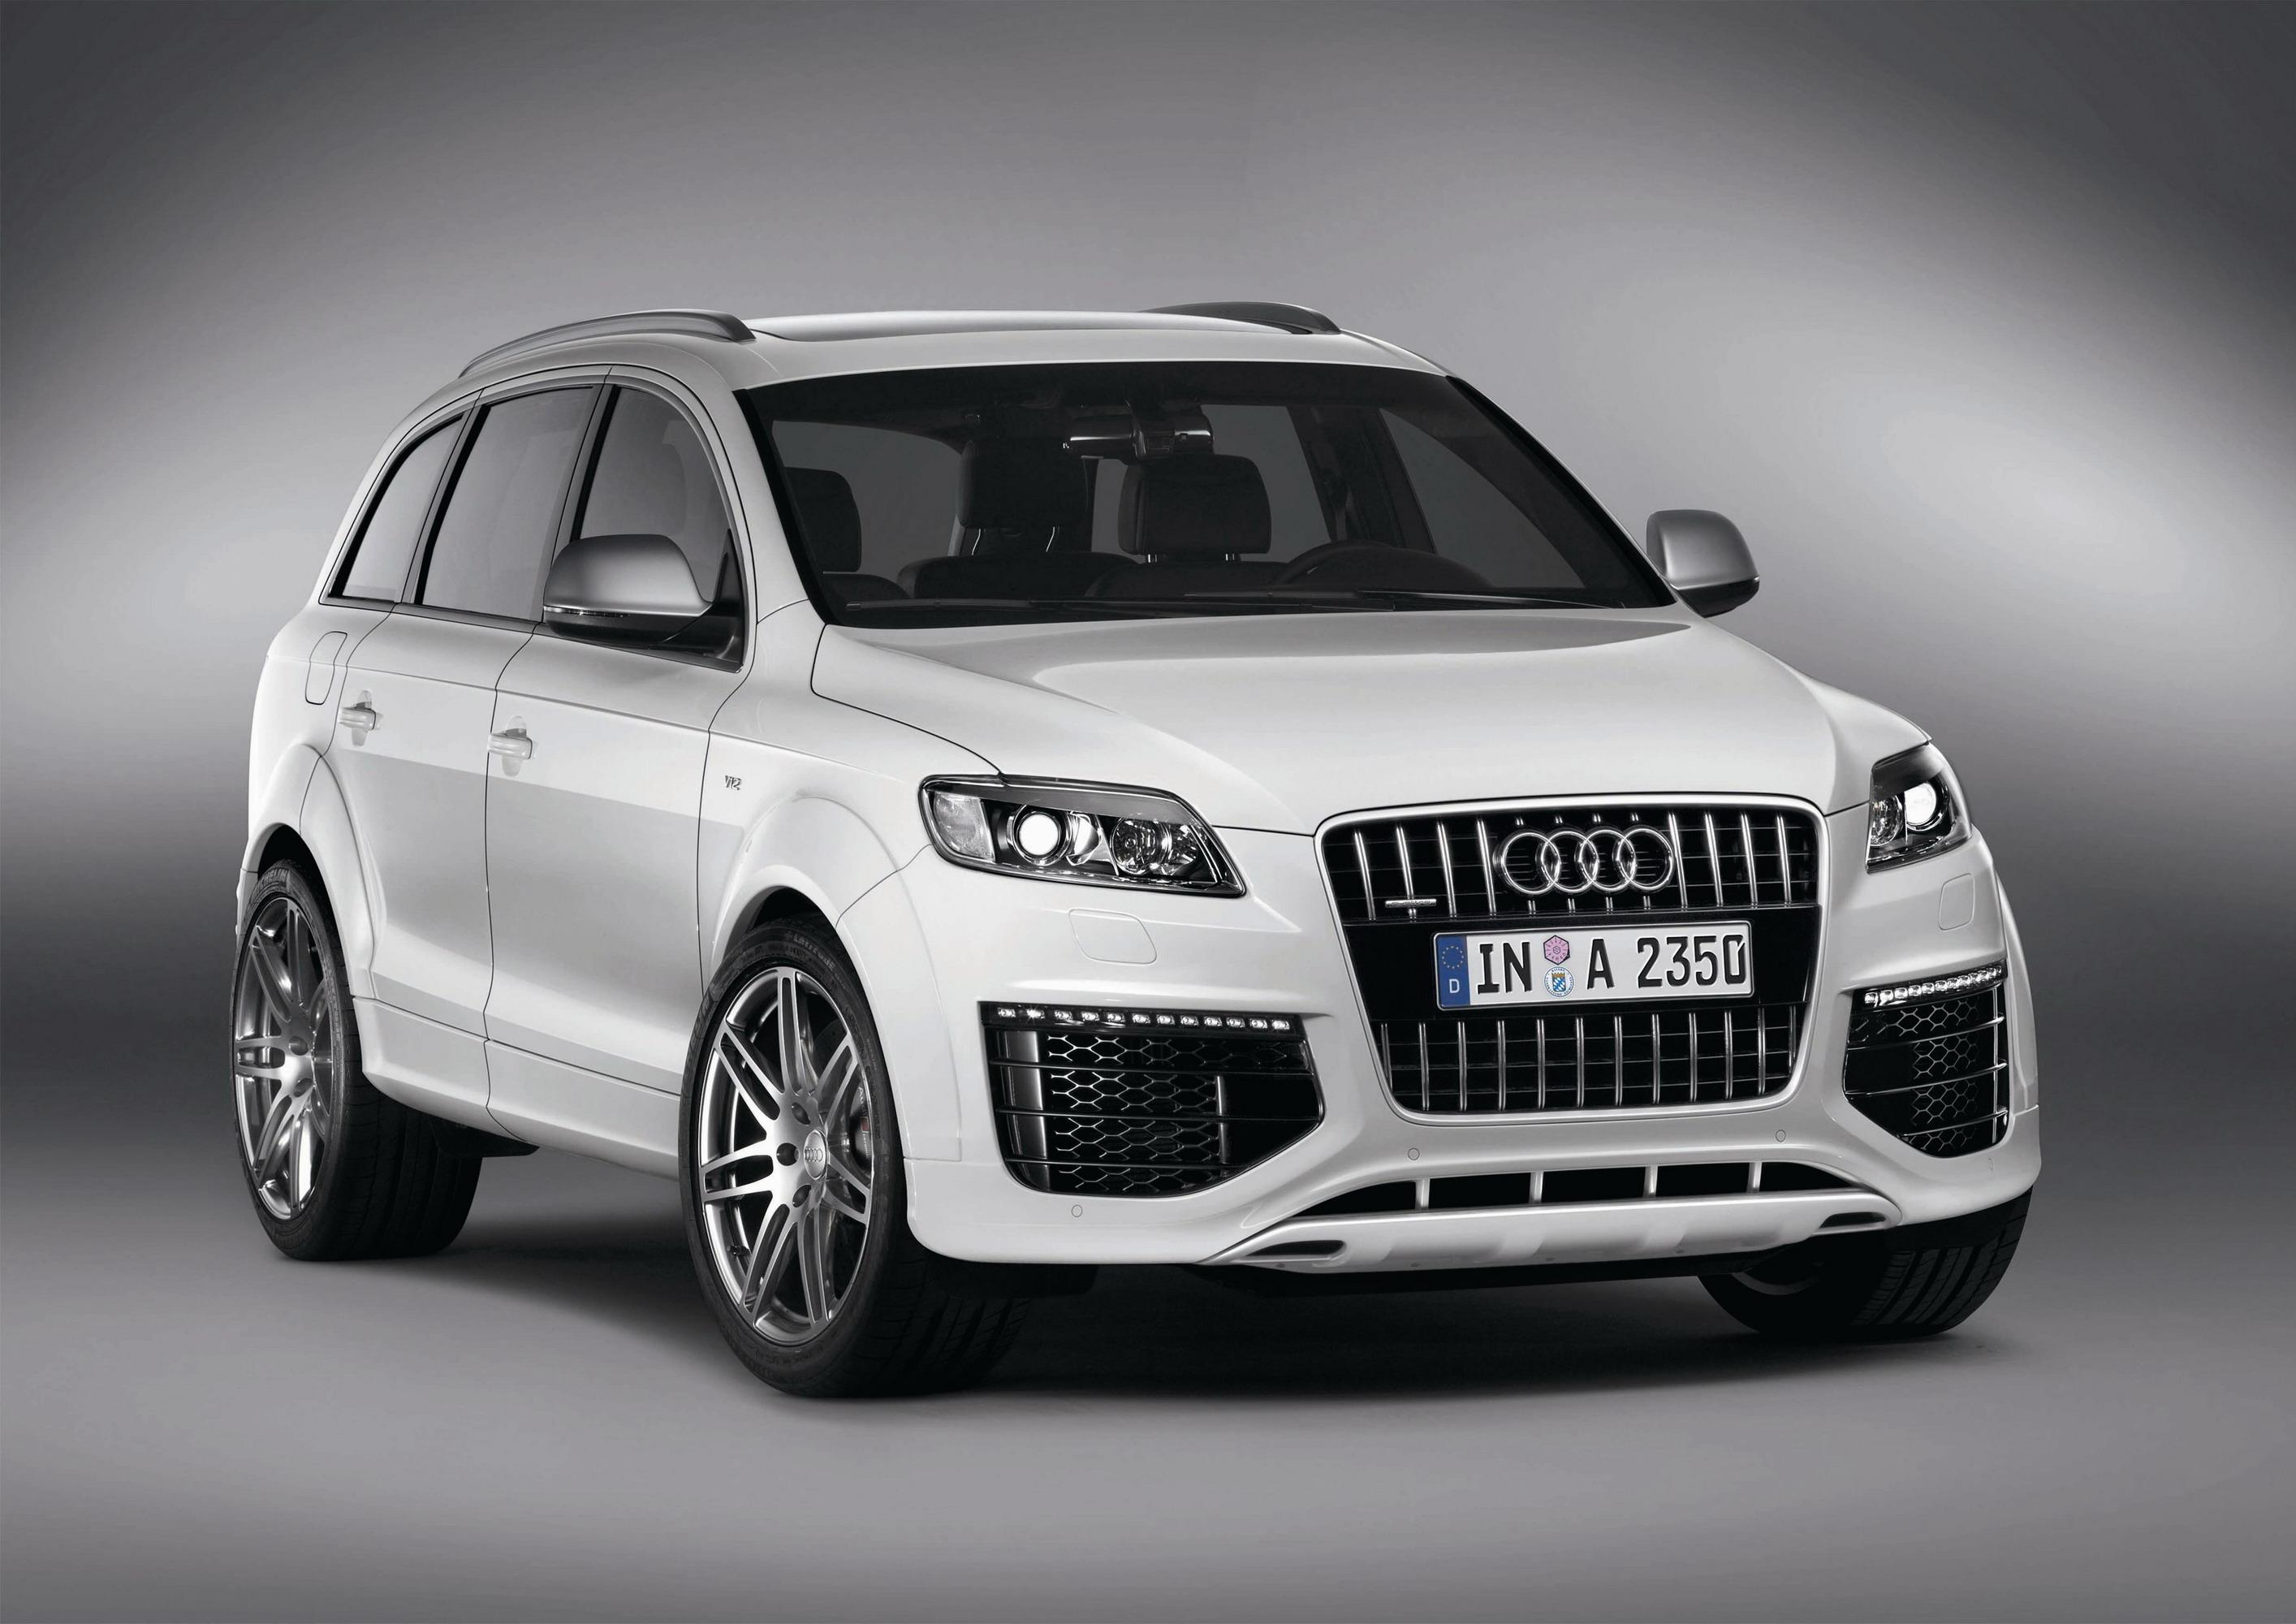 2008 audi q7 v12 tdi quattro review top speed. Black Bedroom Furniture Sets. Home Design Ideas